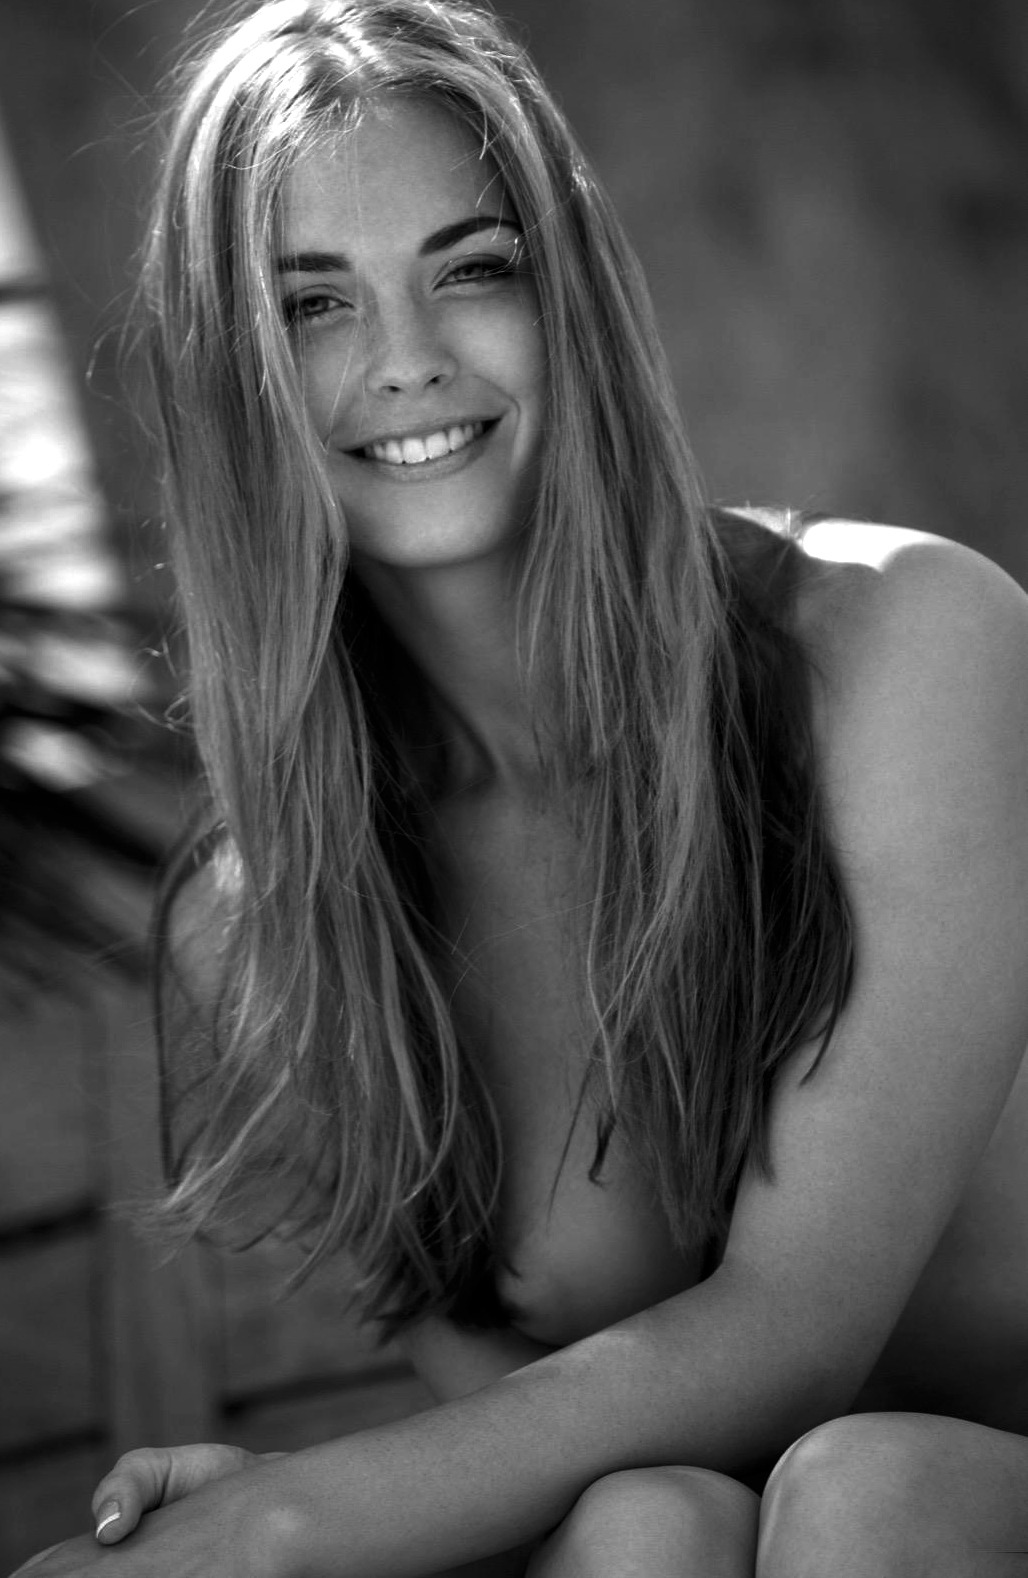 please make me lesbian scene lily carter and zoey #Beauty #BlackAndWhite #blonde #smile #smiling #boobs #tits #hairoverboobs #sensual #seductive #eyes #gorgeous